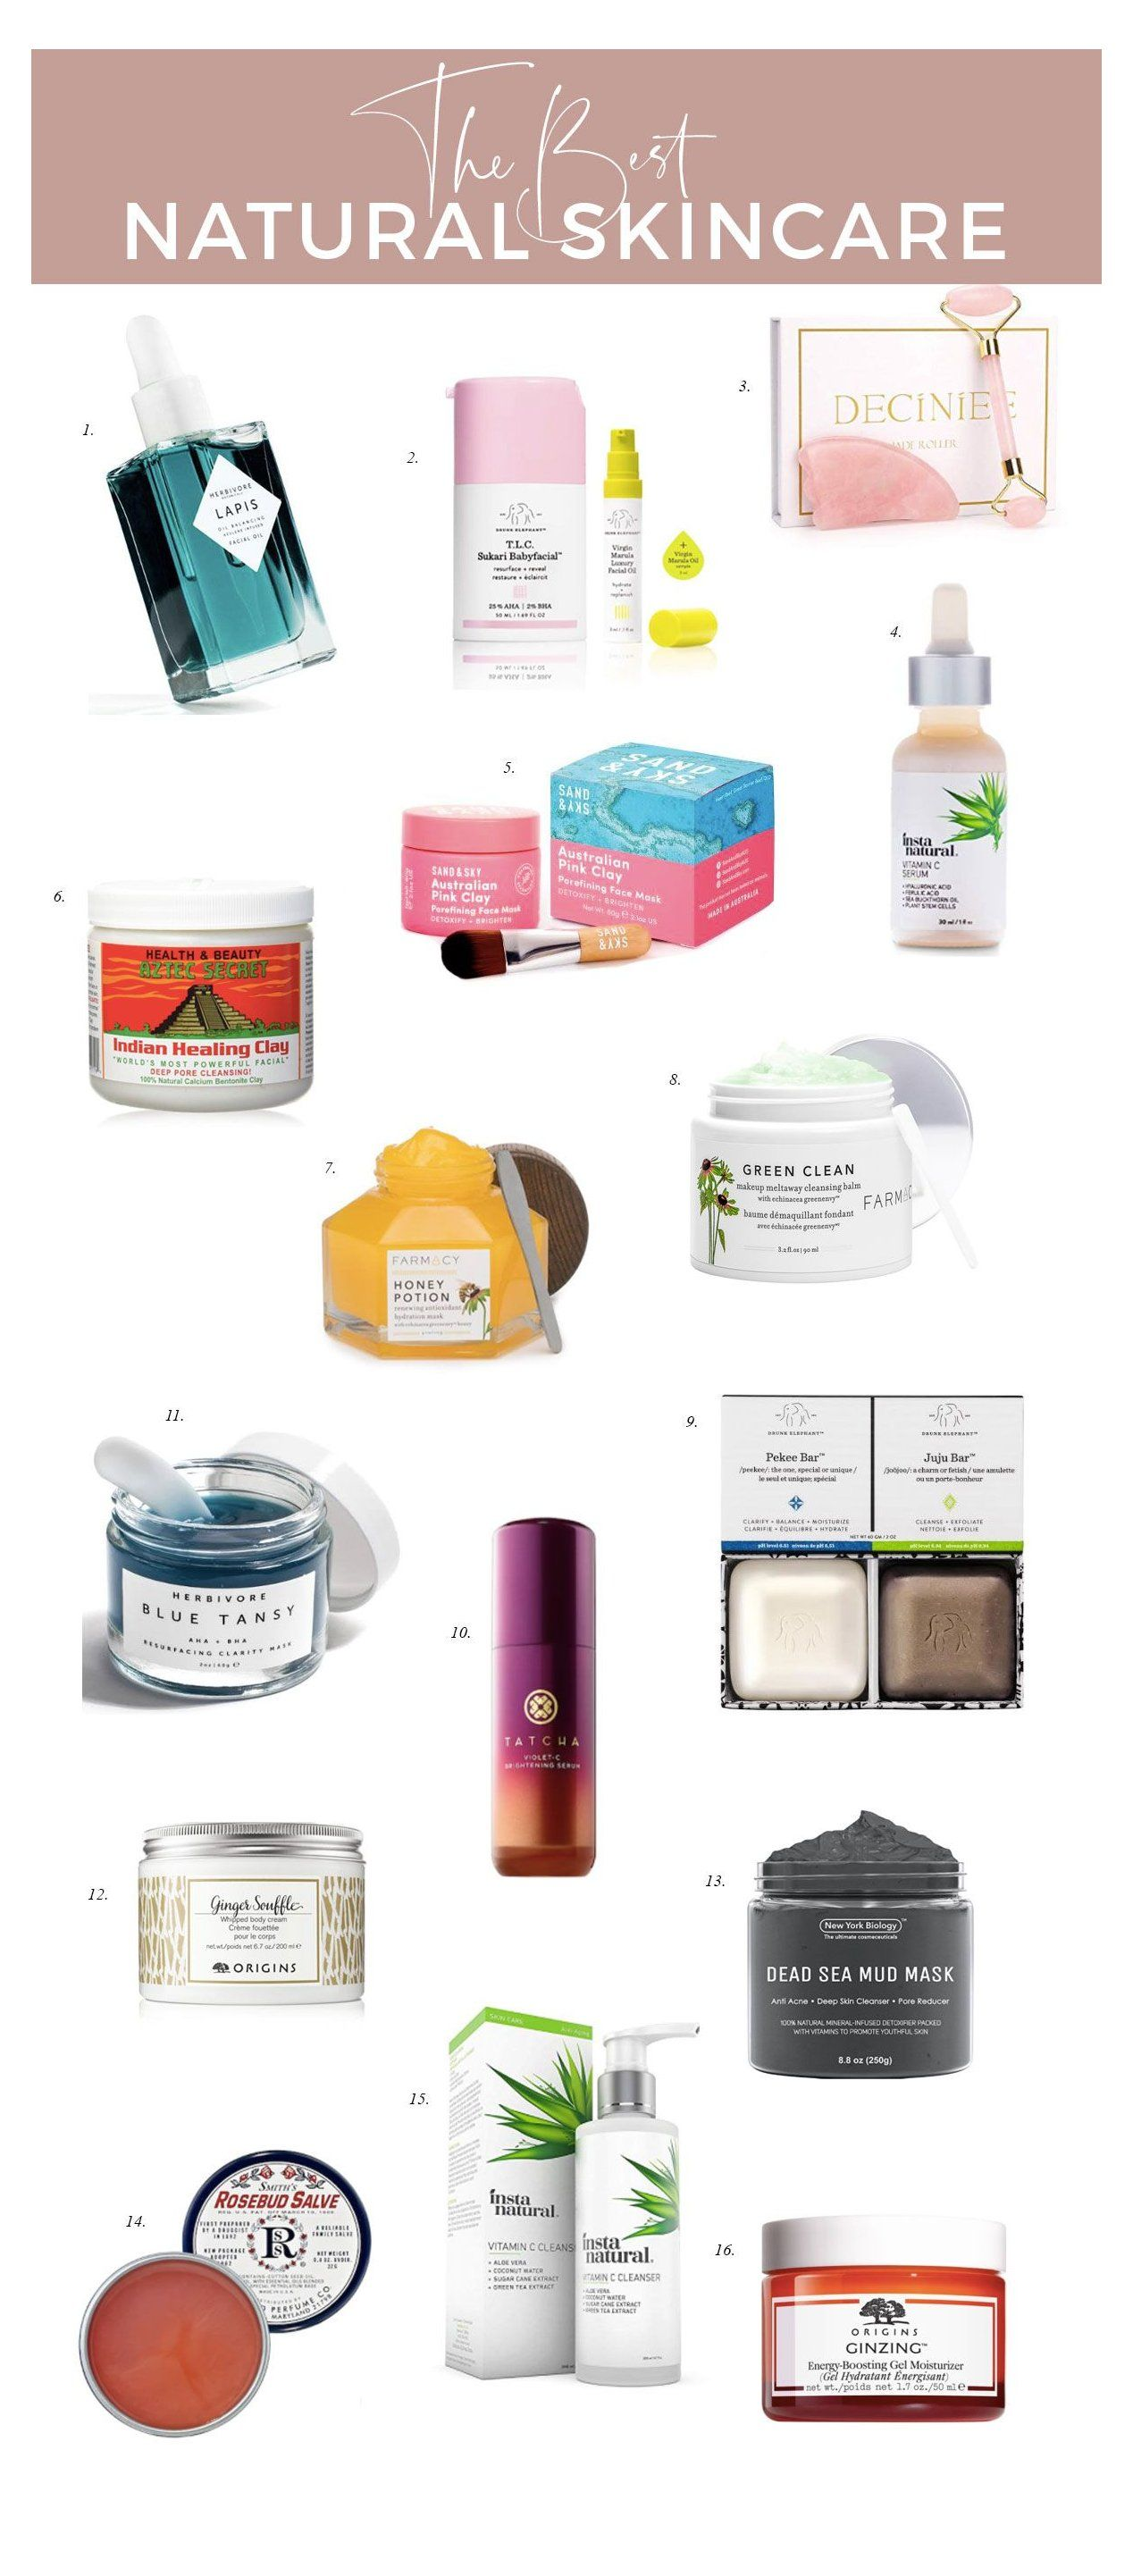 Best Skin Care Products Natural 20s Indian Skin Care Products Indianskincareproducts Best Skin Care In 2020 Natural Skin Care Skin Care Natural Beauty Treatments